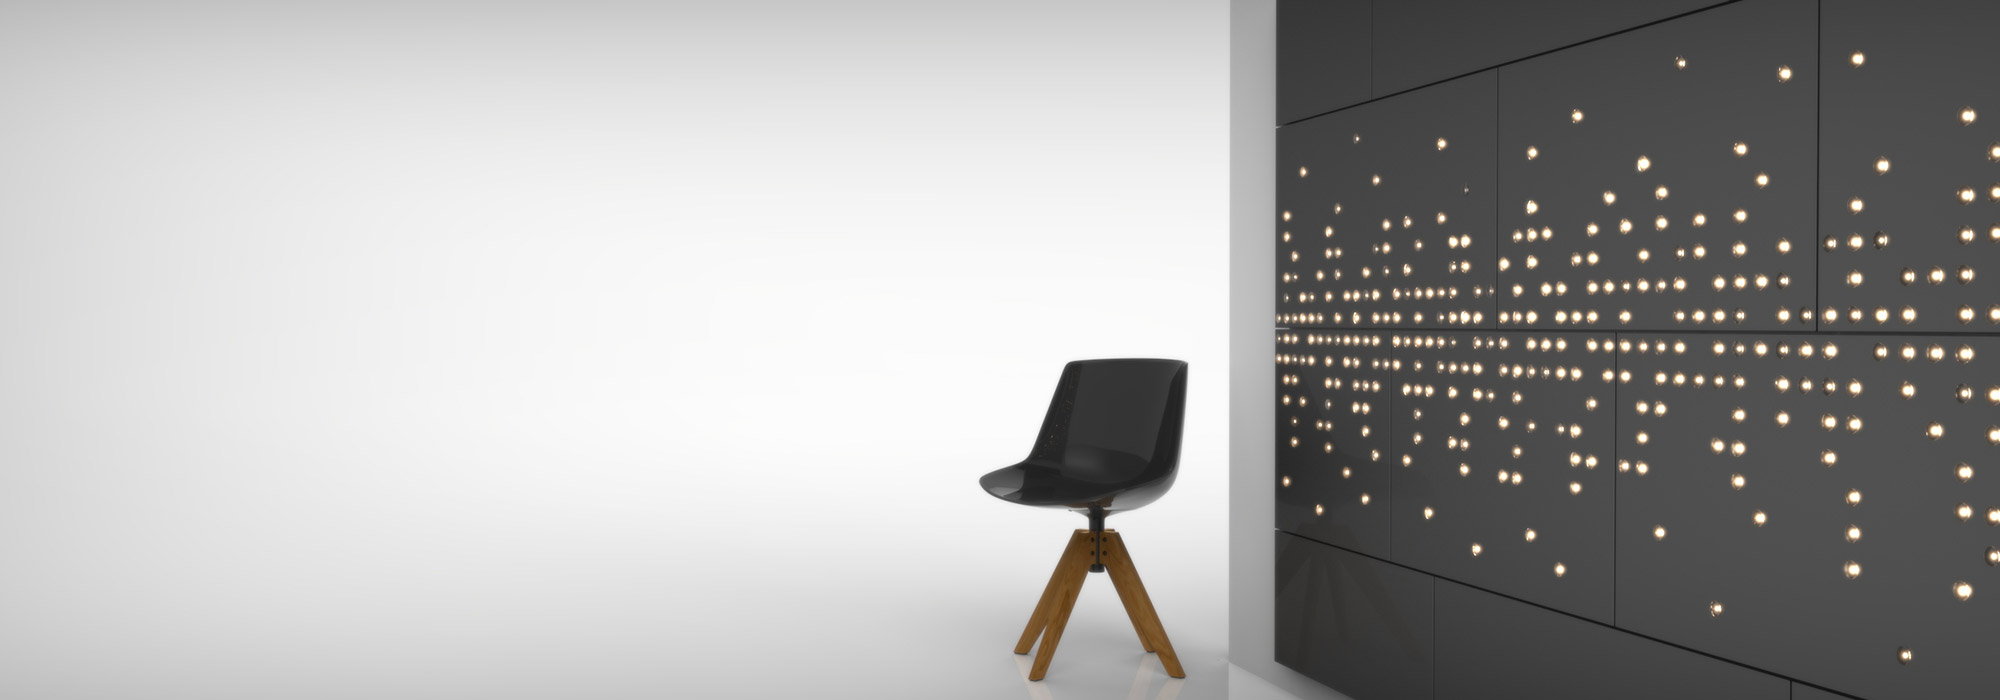 Luminous Patterns by Philips - A world of exciting new possibilities for designers.